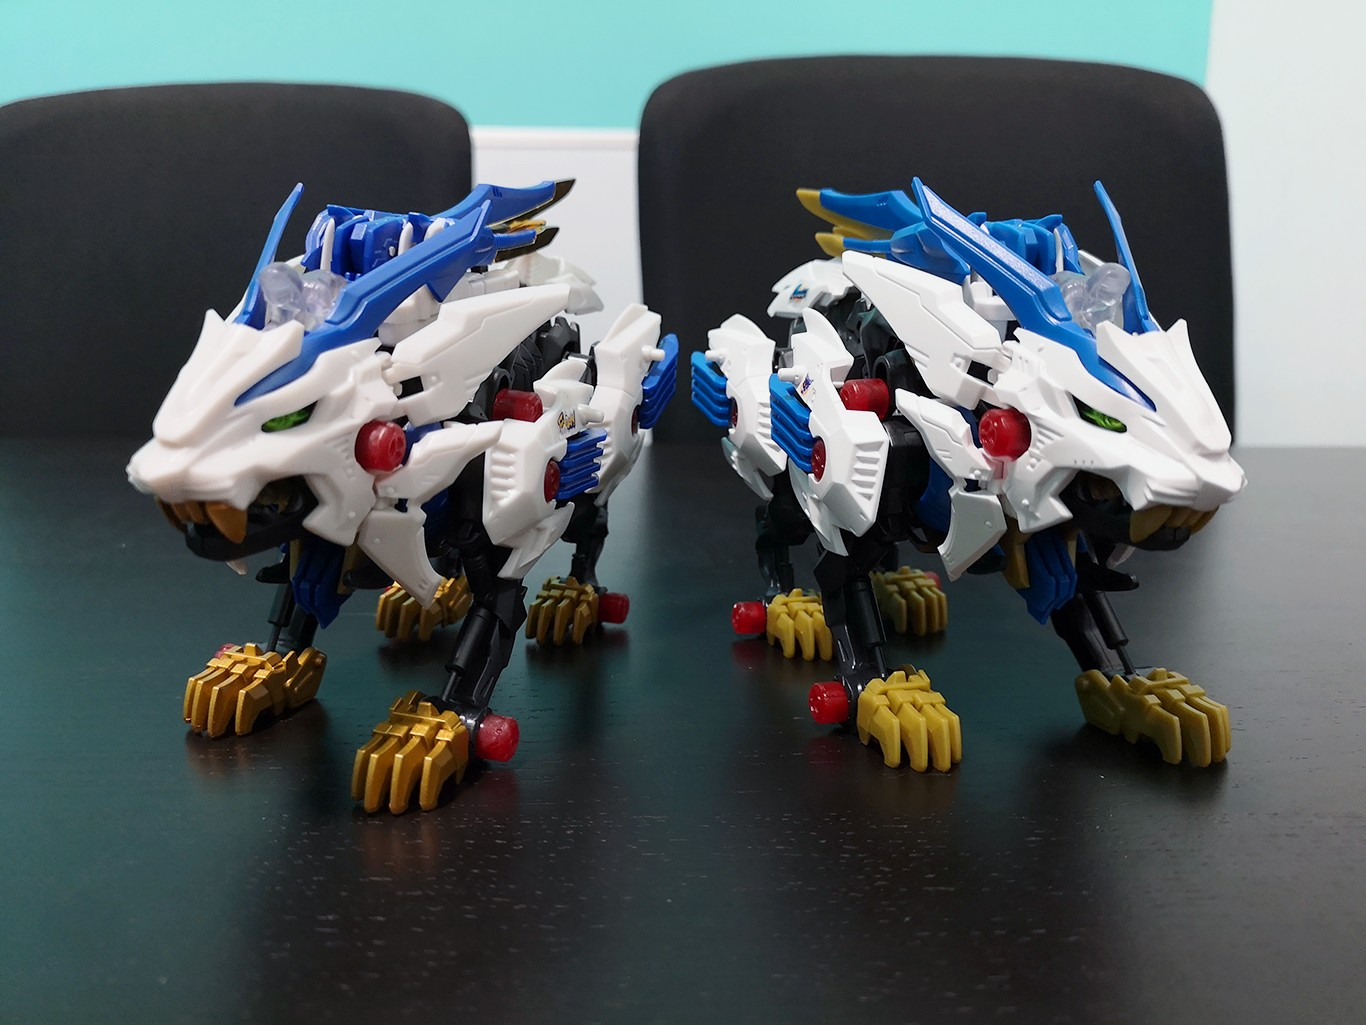 Geek Review: Zoids Wild Special Edition Wild Liger | Geek Culture